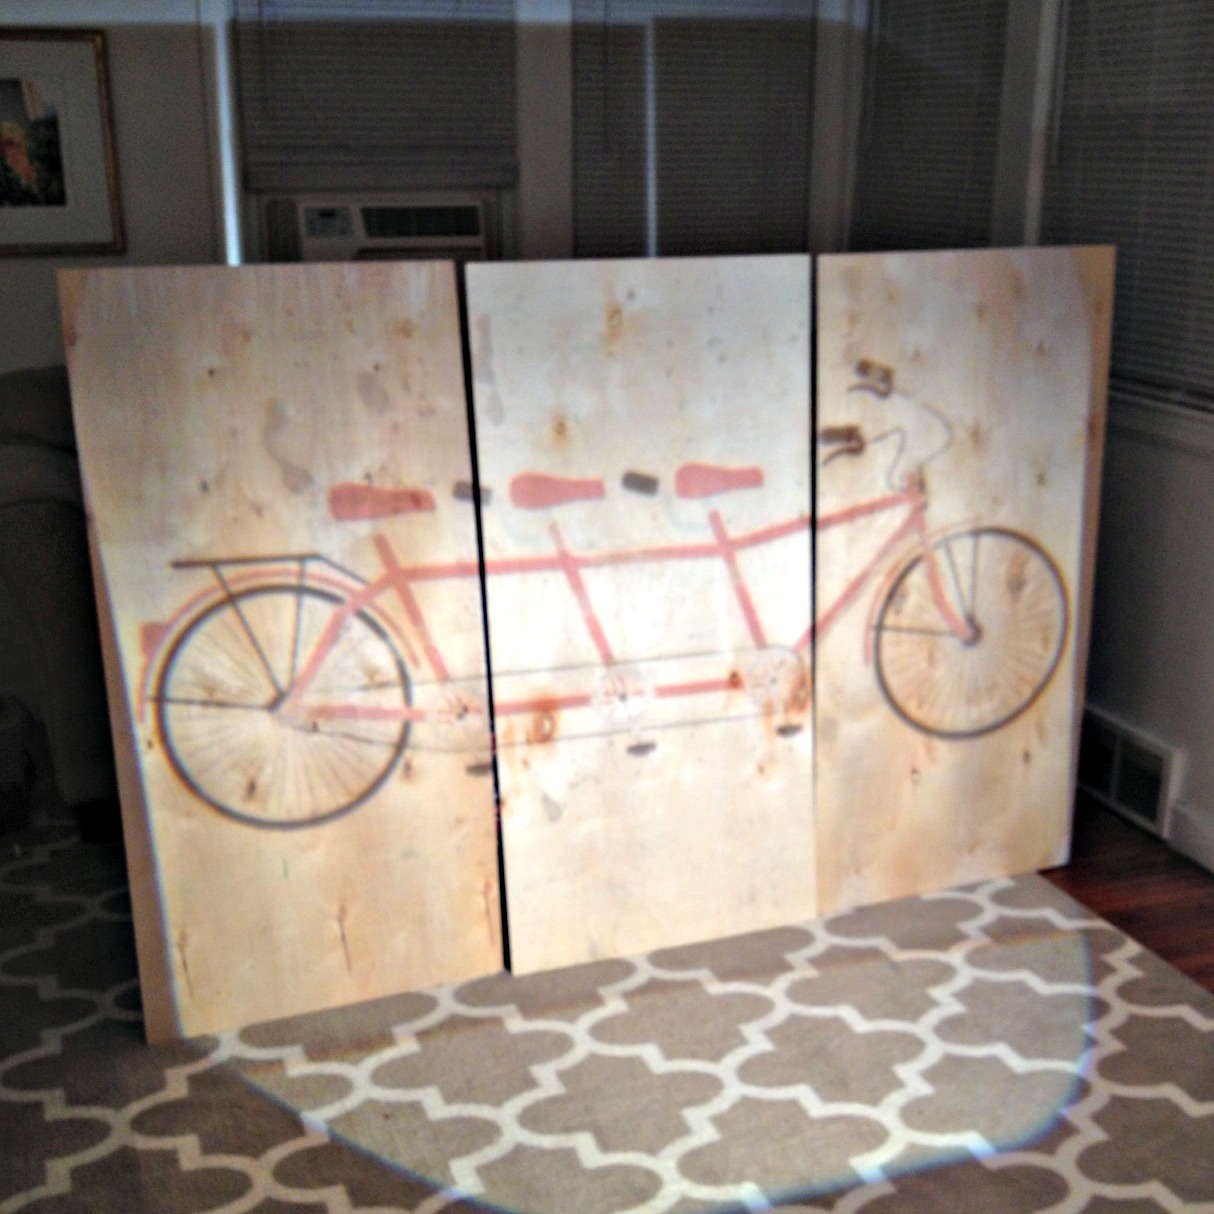 Bike Wall Art diy tandem bicycle wall art - classy clutter